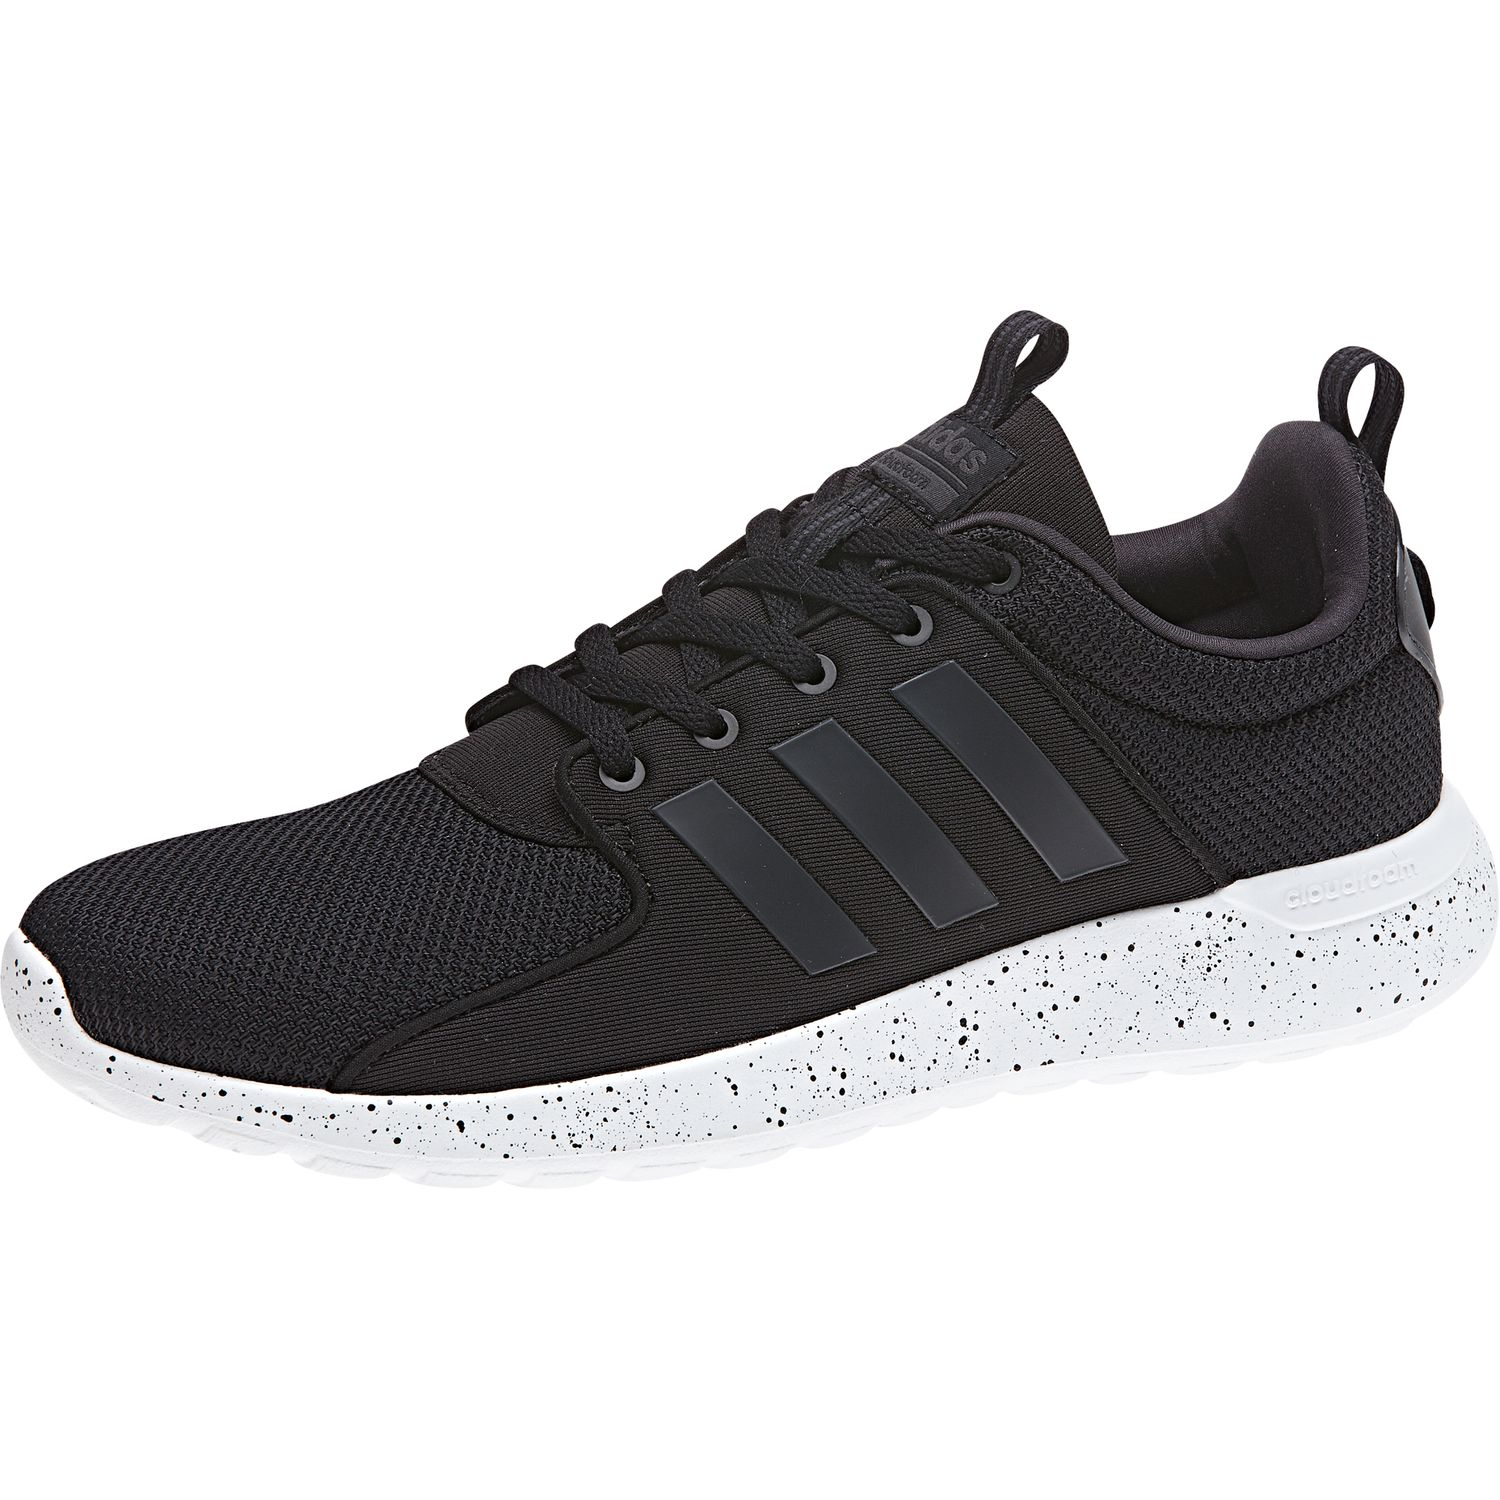 443b40208b5b adidas men s sport shoes running shoes CLOUDFOAM CF Lite racer M DB0594  black